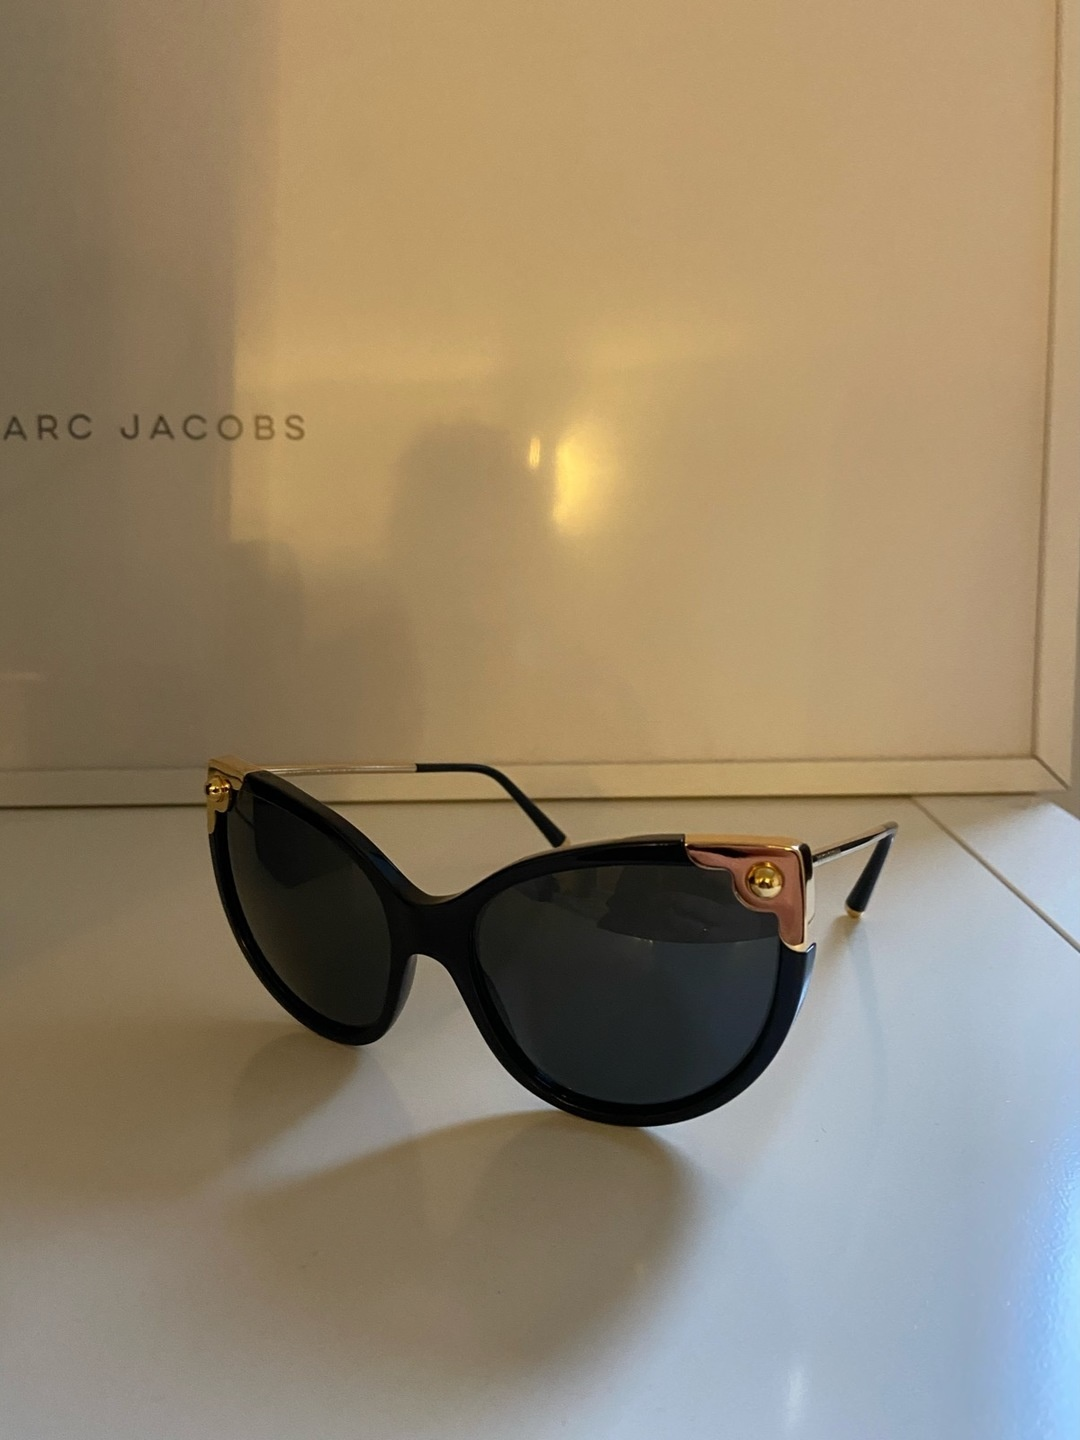 Women's sunglasses - DOLCE & GABBANA photo 1